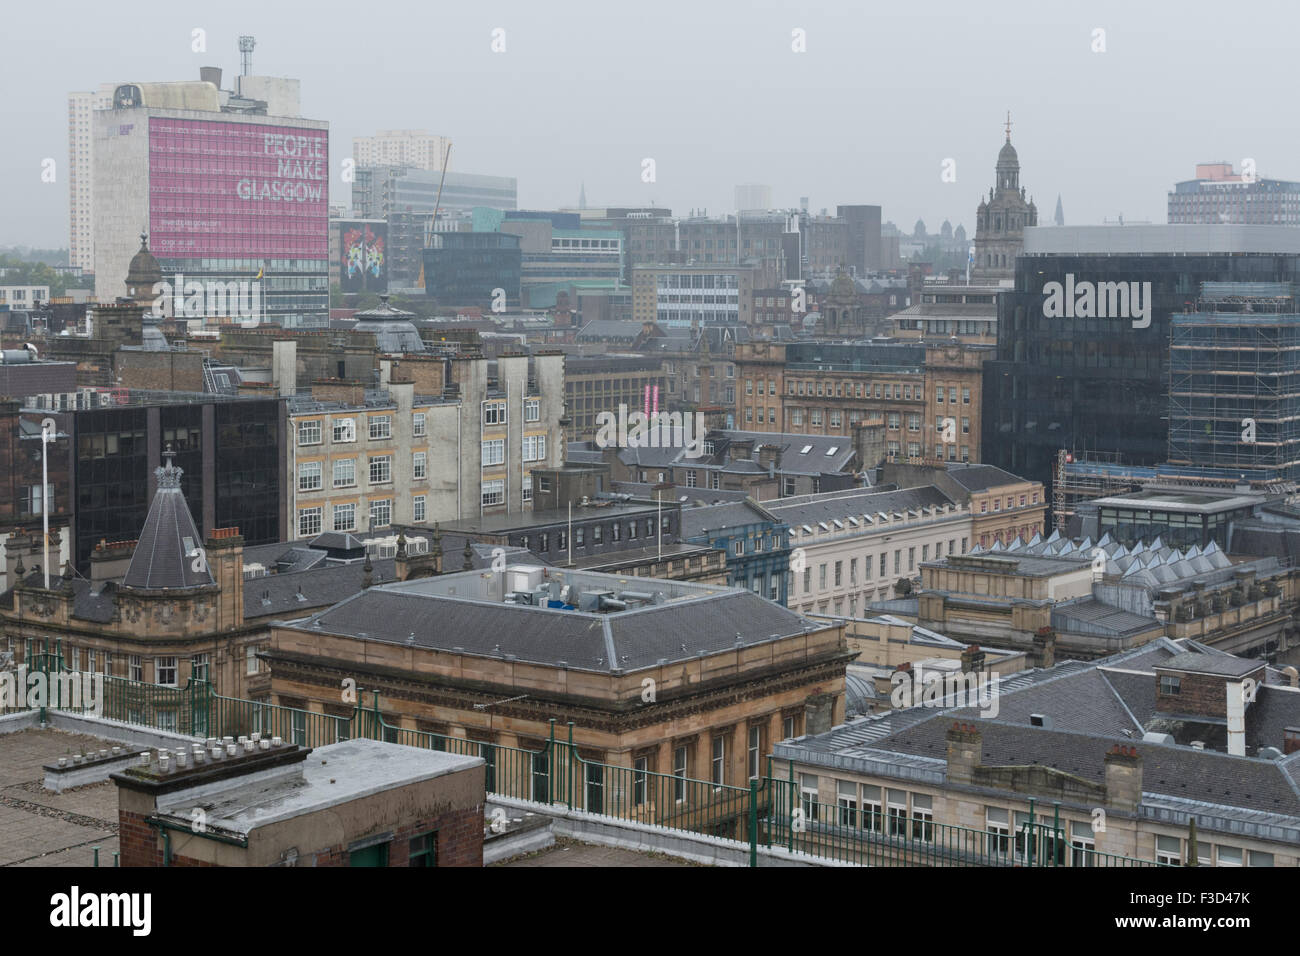 glasgow  scotland  uk